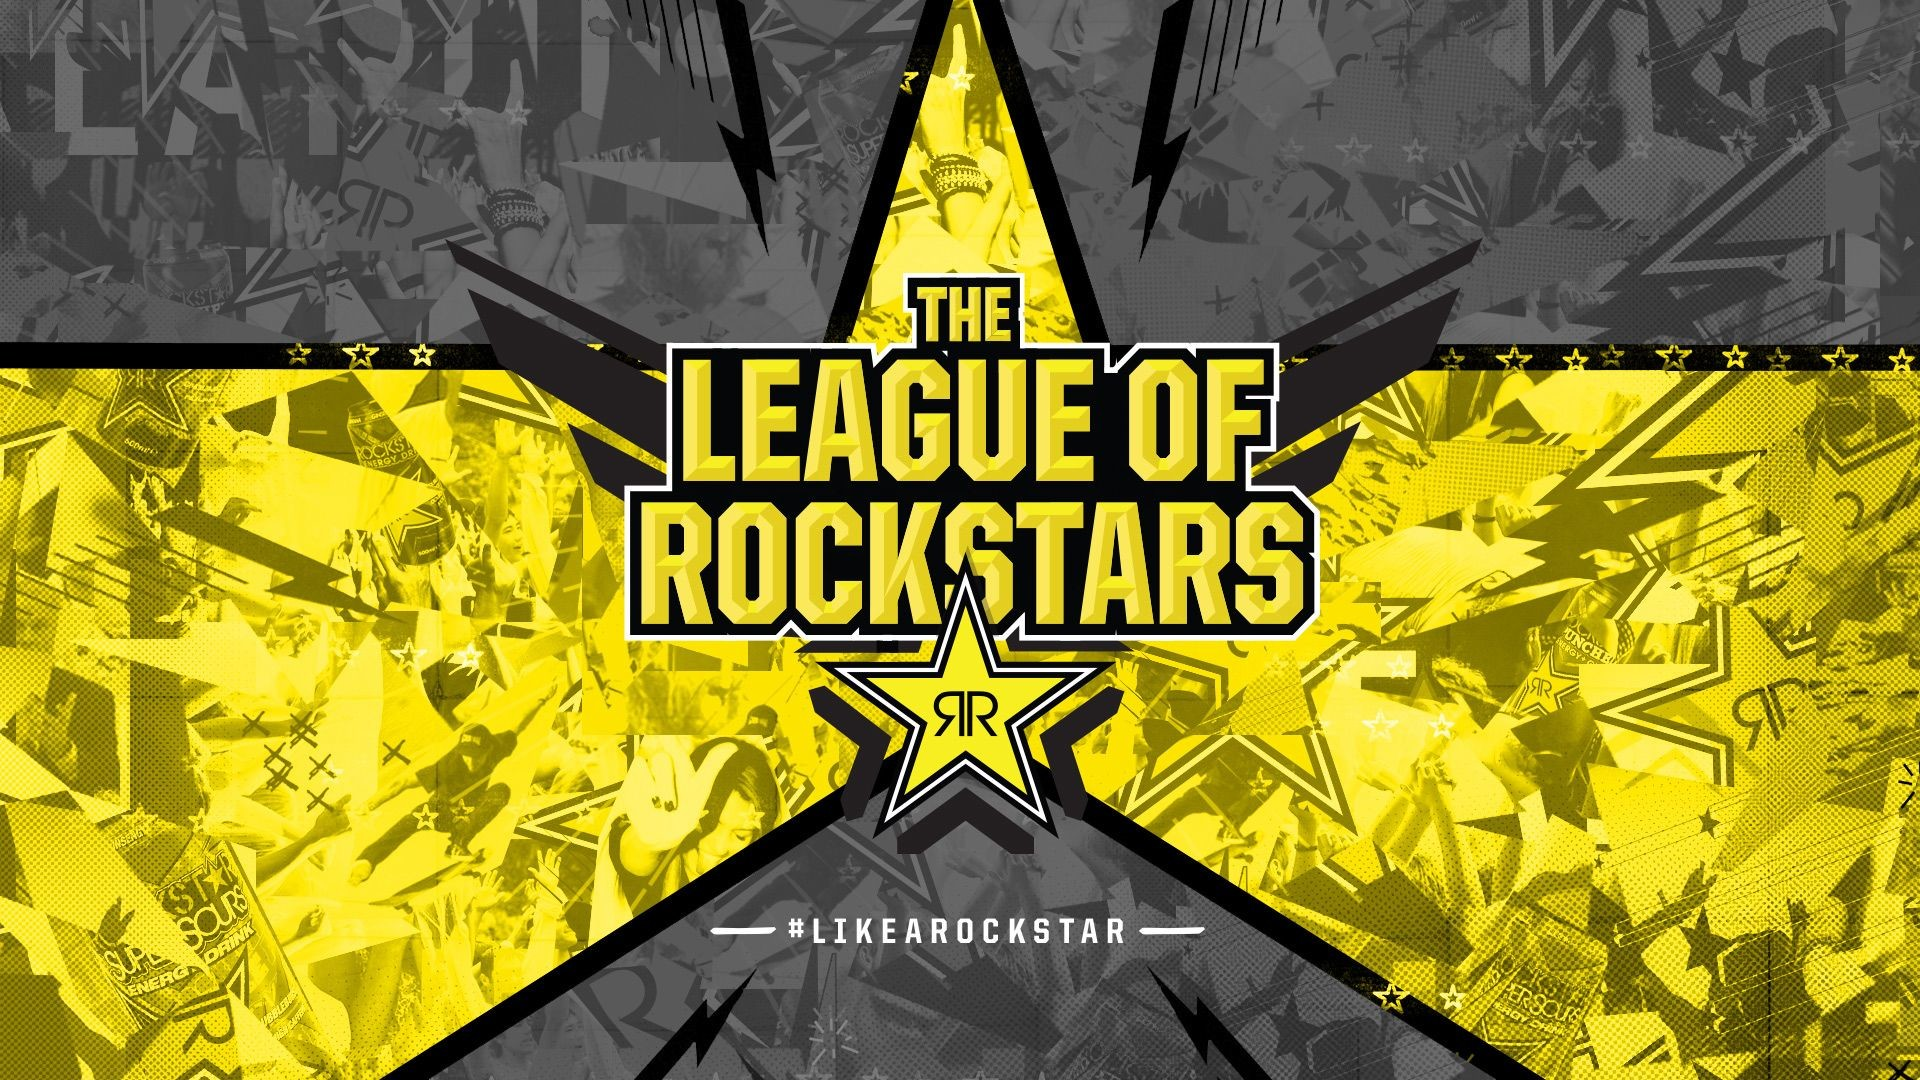 1920x1080 The League of Rockstars | Rockstar Energy | Pinterest